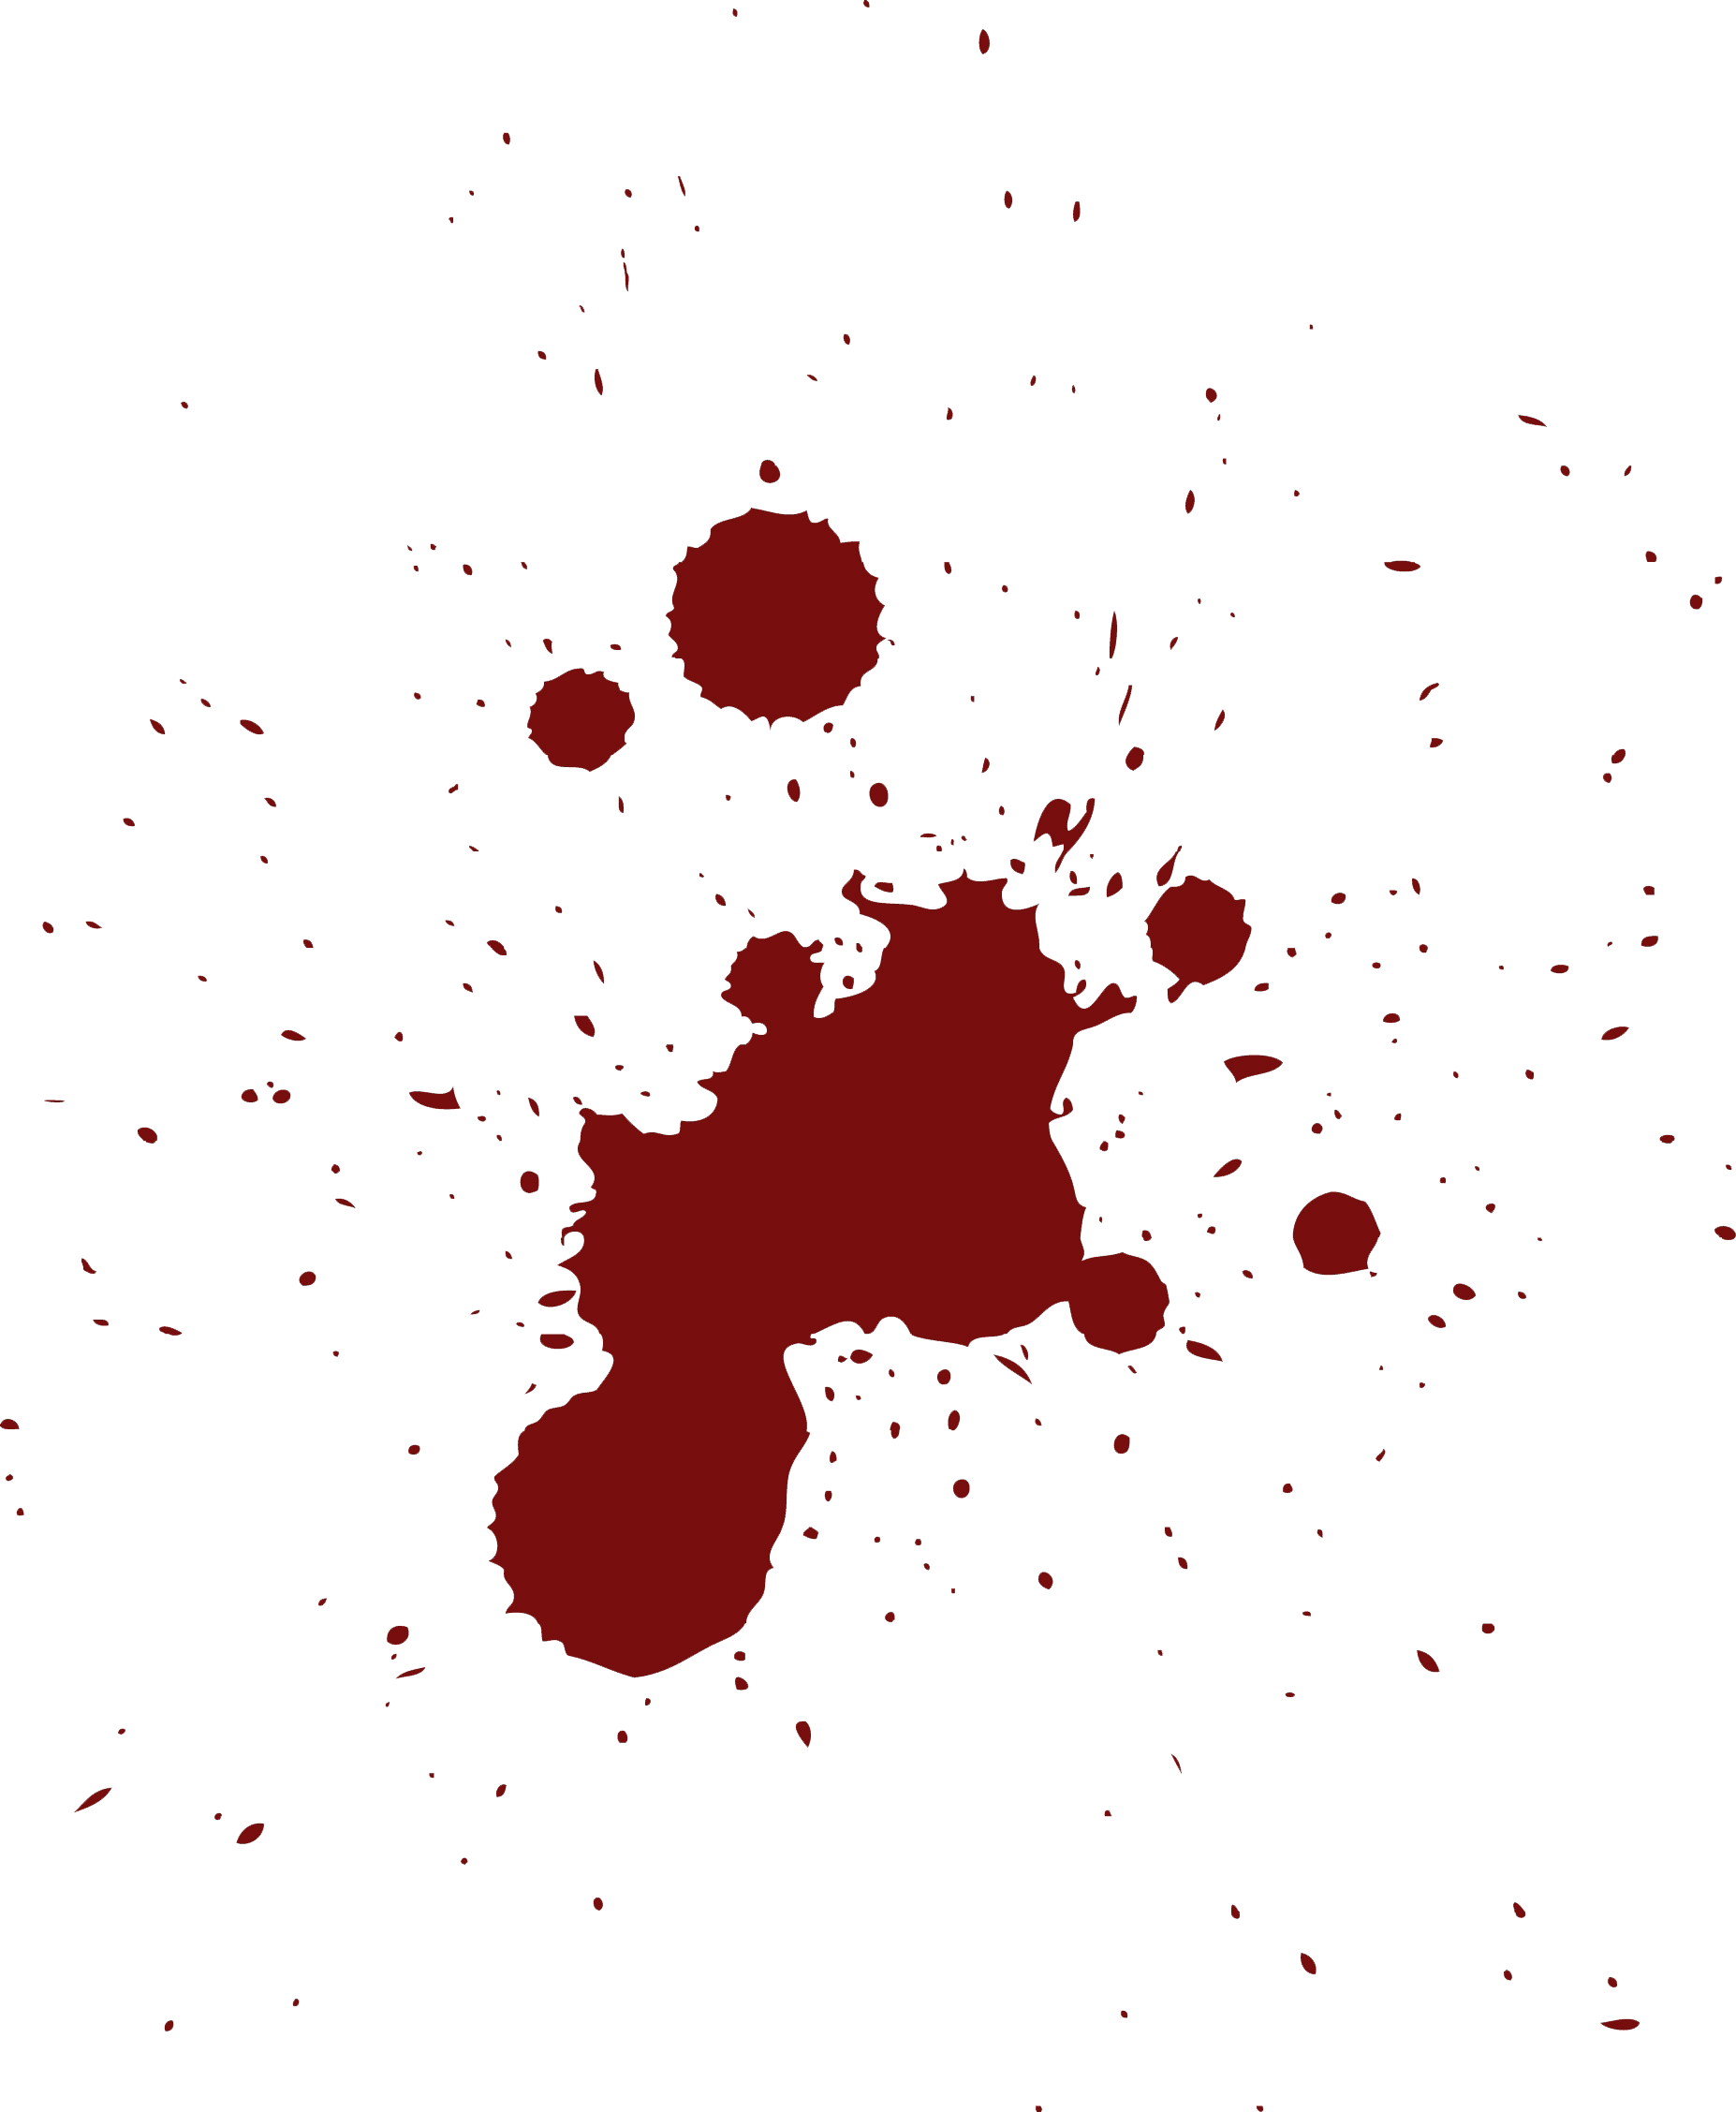 Blood drops png. K t qu h